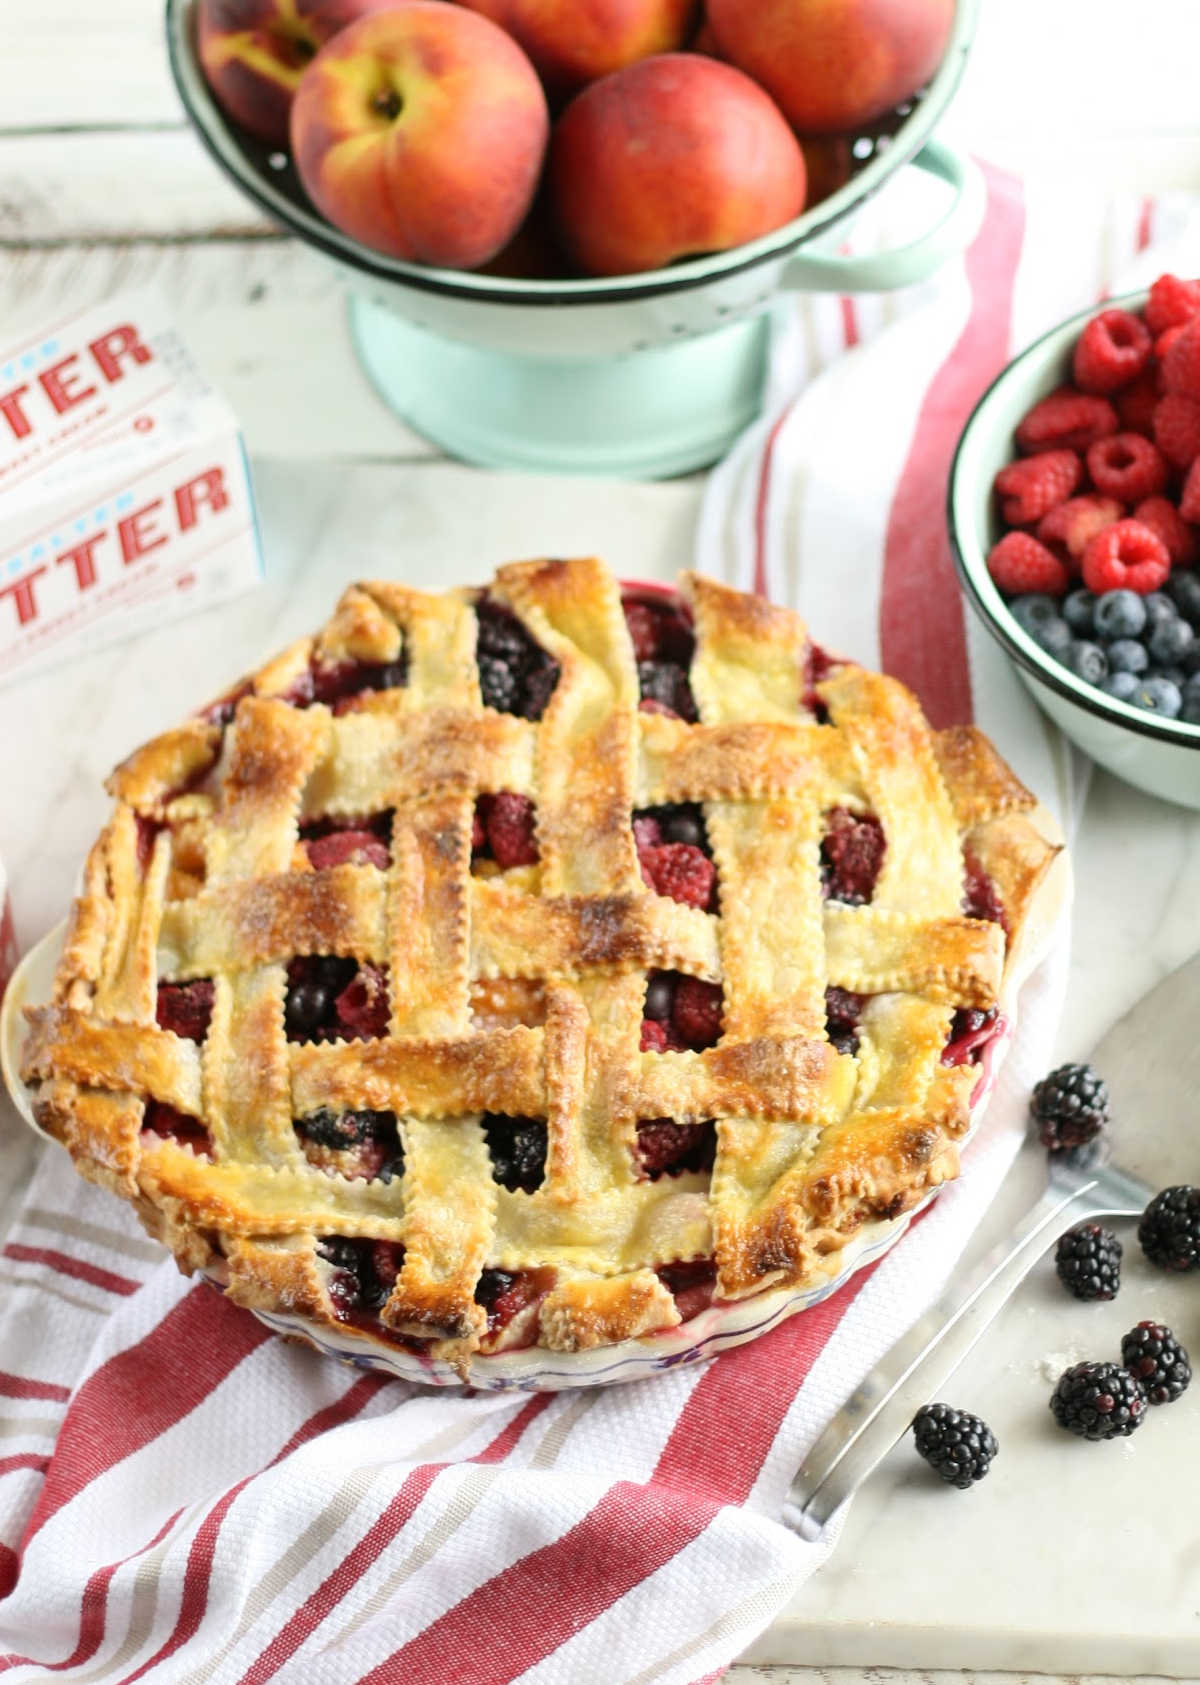 close up of triple berry pie with lattice crust on white and red striped kitchen cloth.